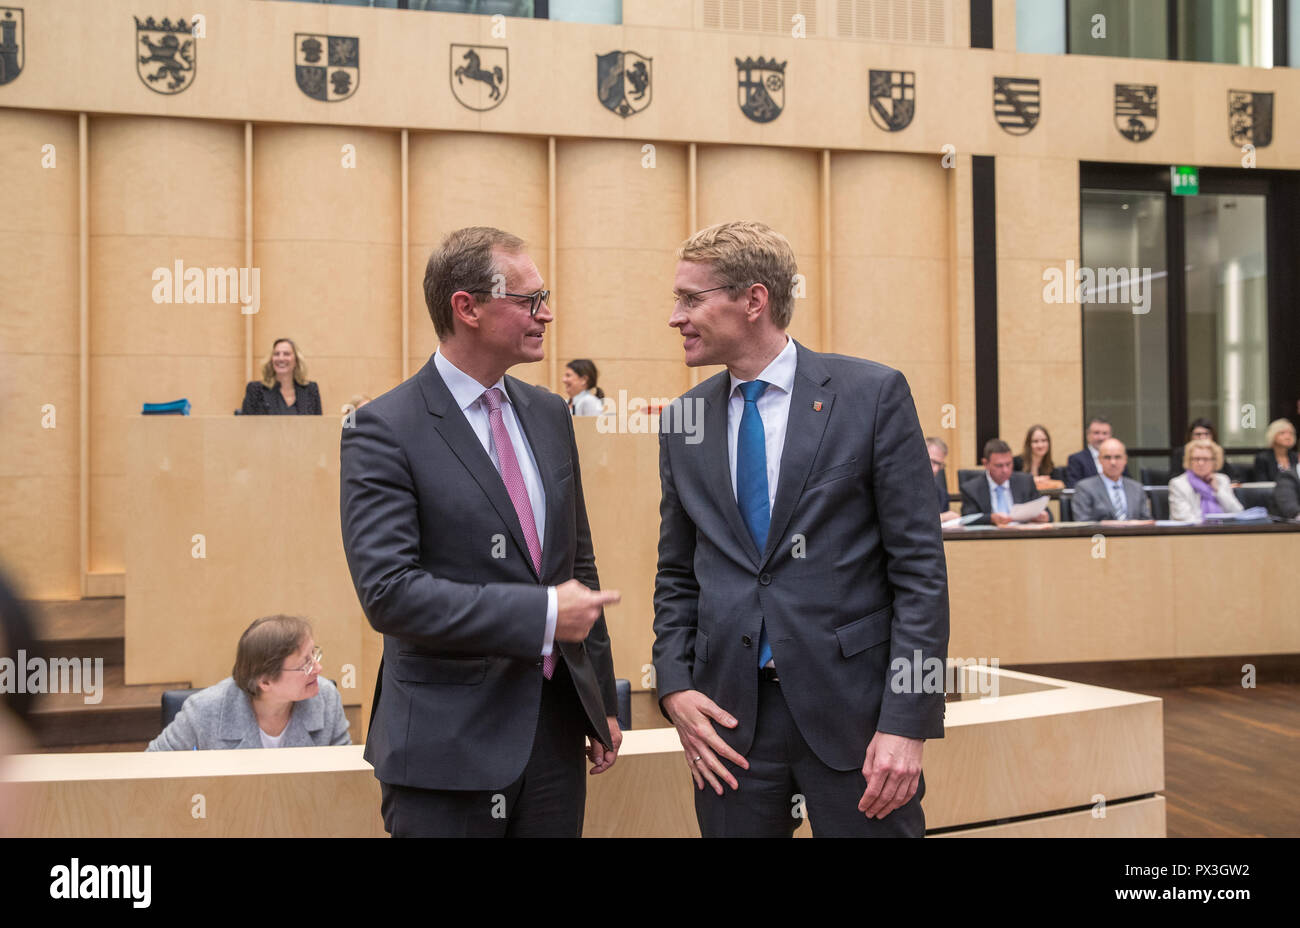 Berlin, Germany. 19th Oct, 2018. Daniel Günther (CDU, r), Minister President of Schleswig-Holstein, succeeds Michael Müller (SPD, l), Governing Mayor of Berlin, as President of the Bundesrat in the Bundesrat. From 01.11.2018 Günther will take over the chairmanship of the Länderkammer. The Upper House (Bundesrat) is also dealing with the grand coalition's plans for legislation on kindergarten quality, pension stabilization, and affordable rental housing. Credit: Jens Büttner/dpa-Zentralbild/dpa/Alamy Live News - Stock Image